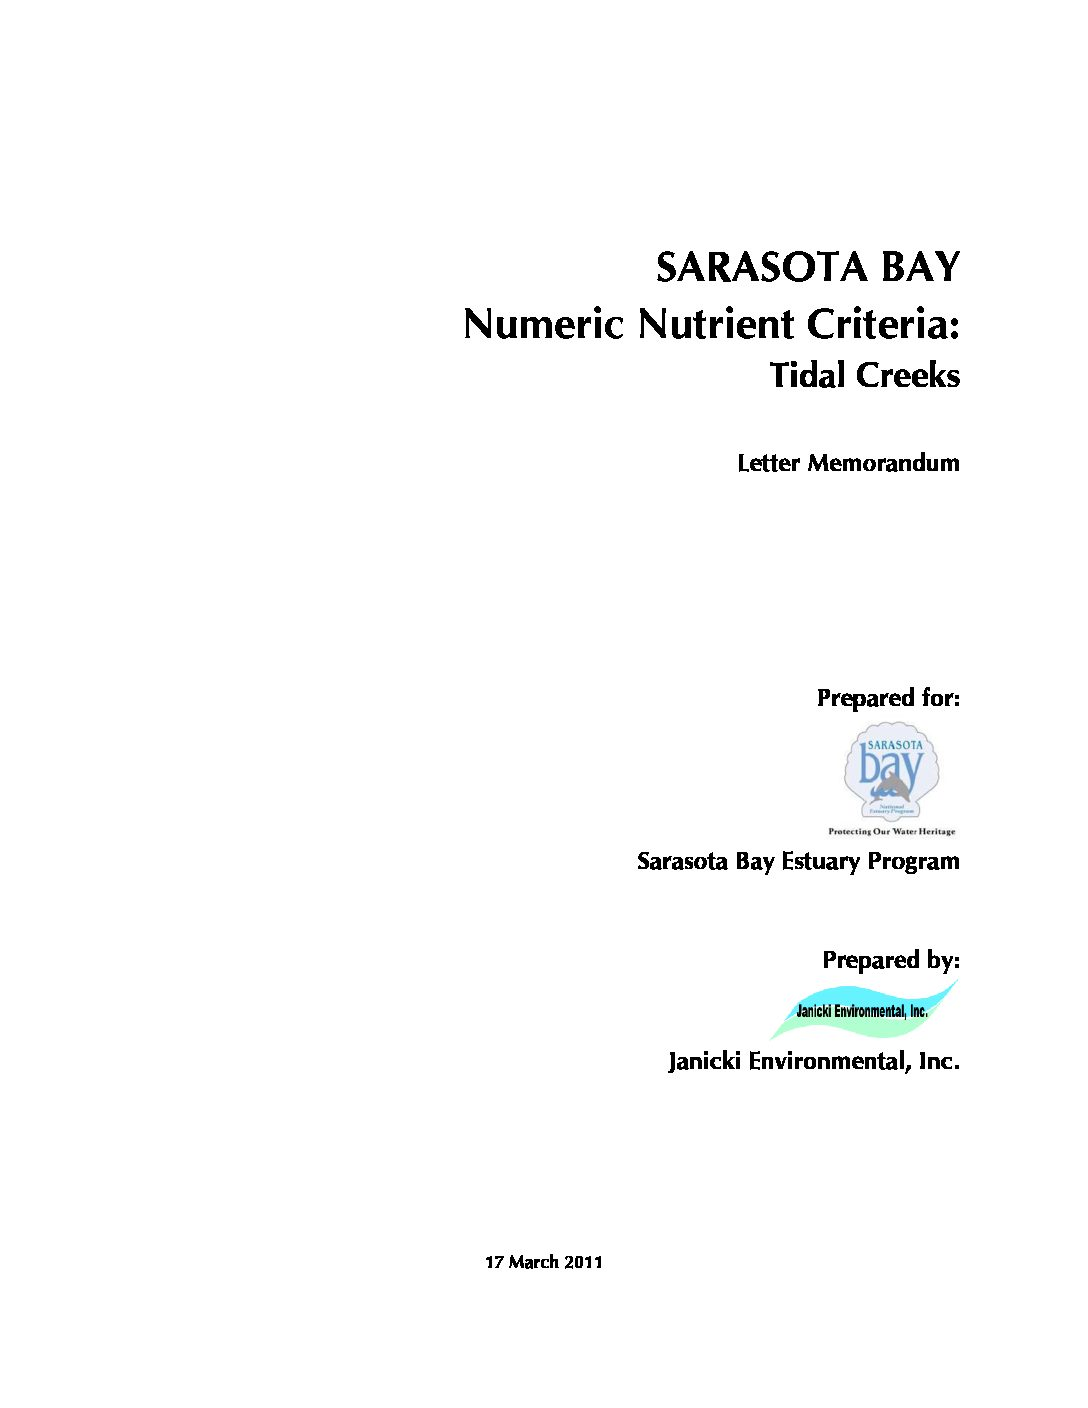 Numeric Nutrient Criteria for Tidal Creeks in the Sarasota Bay Region